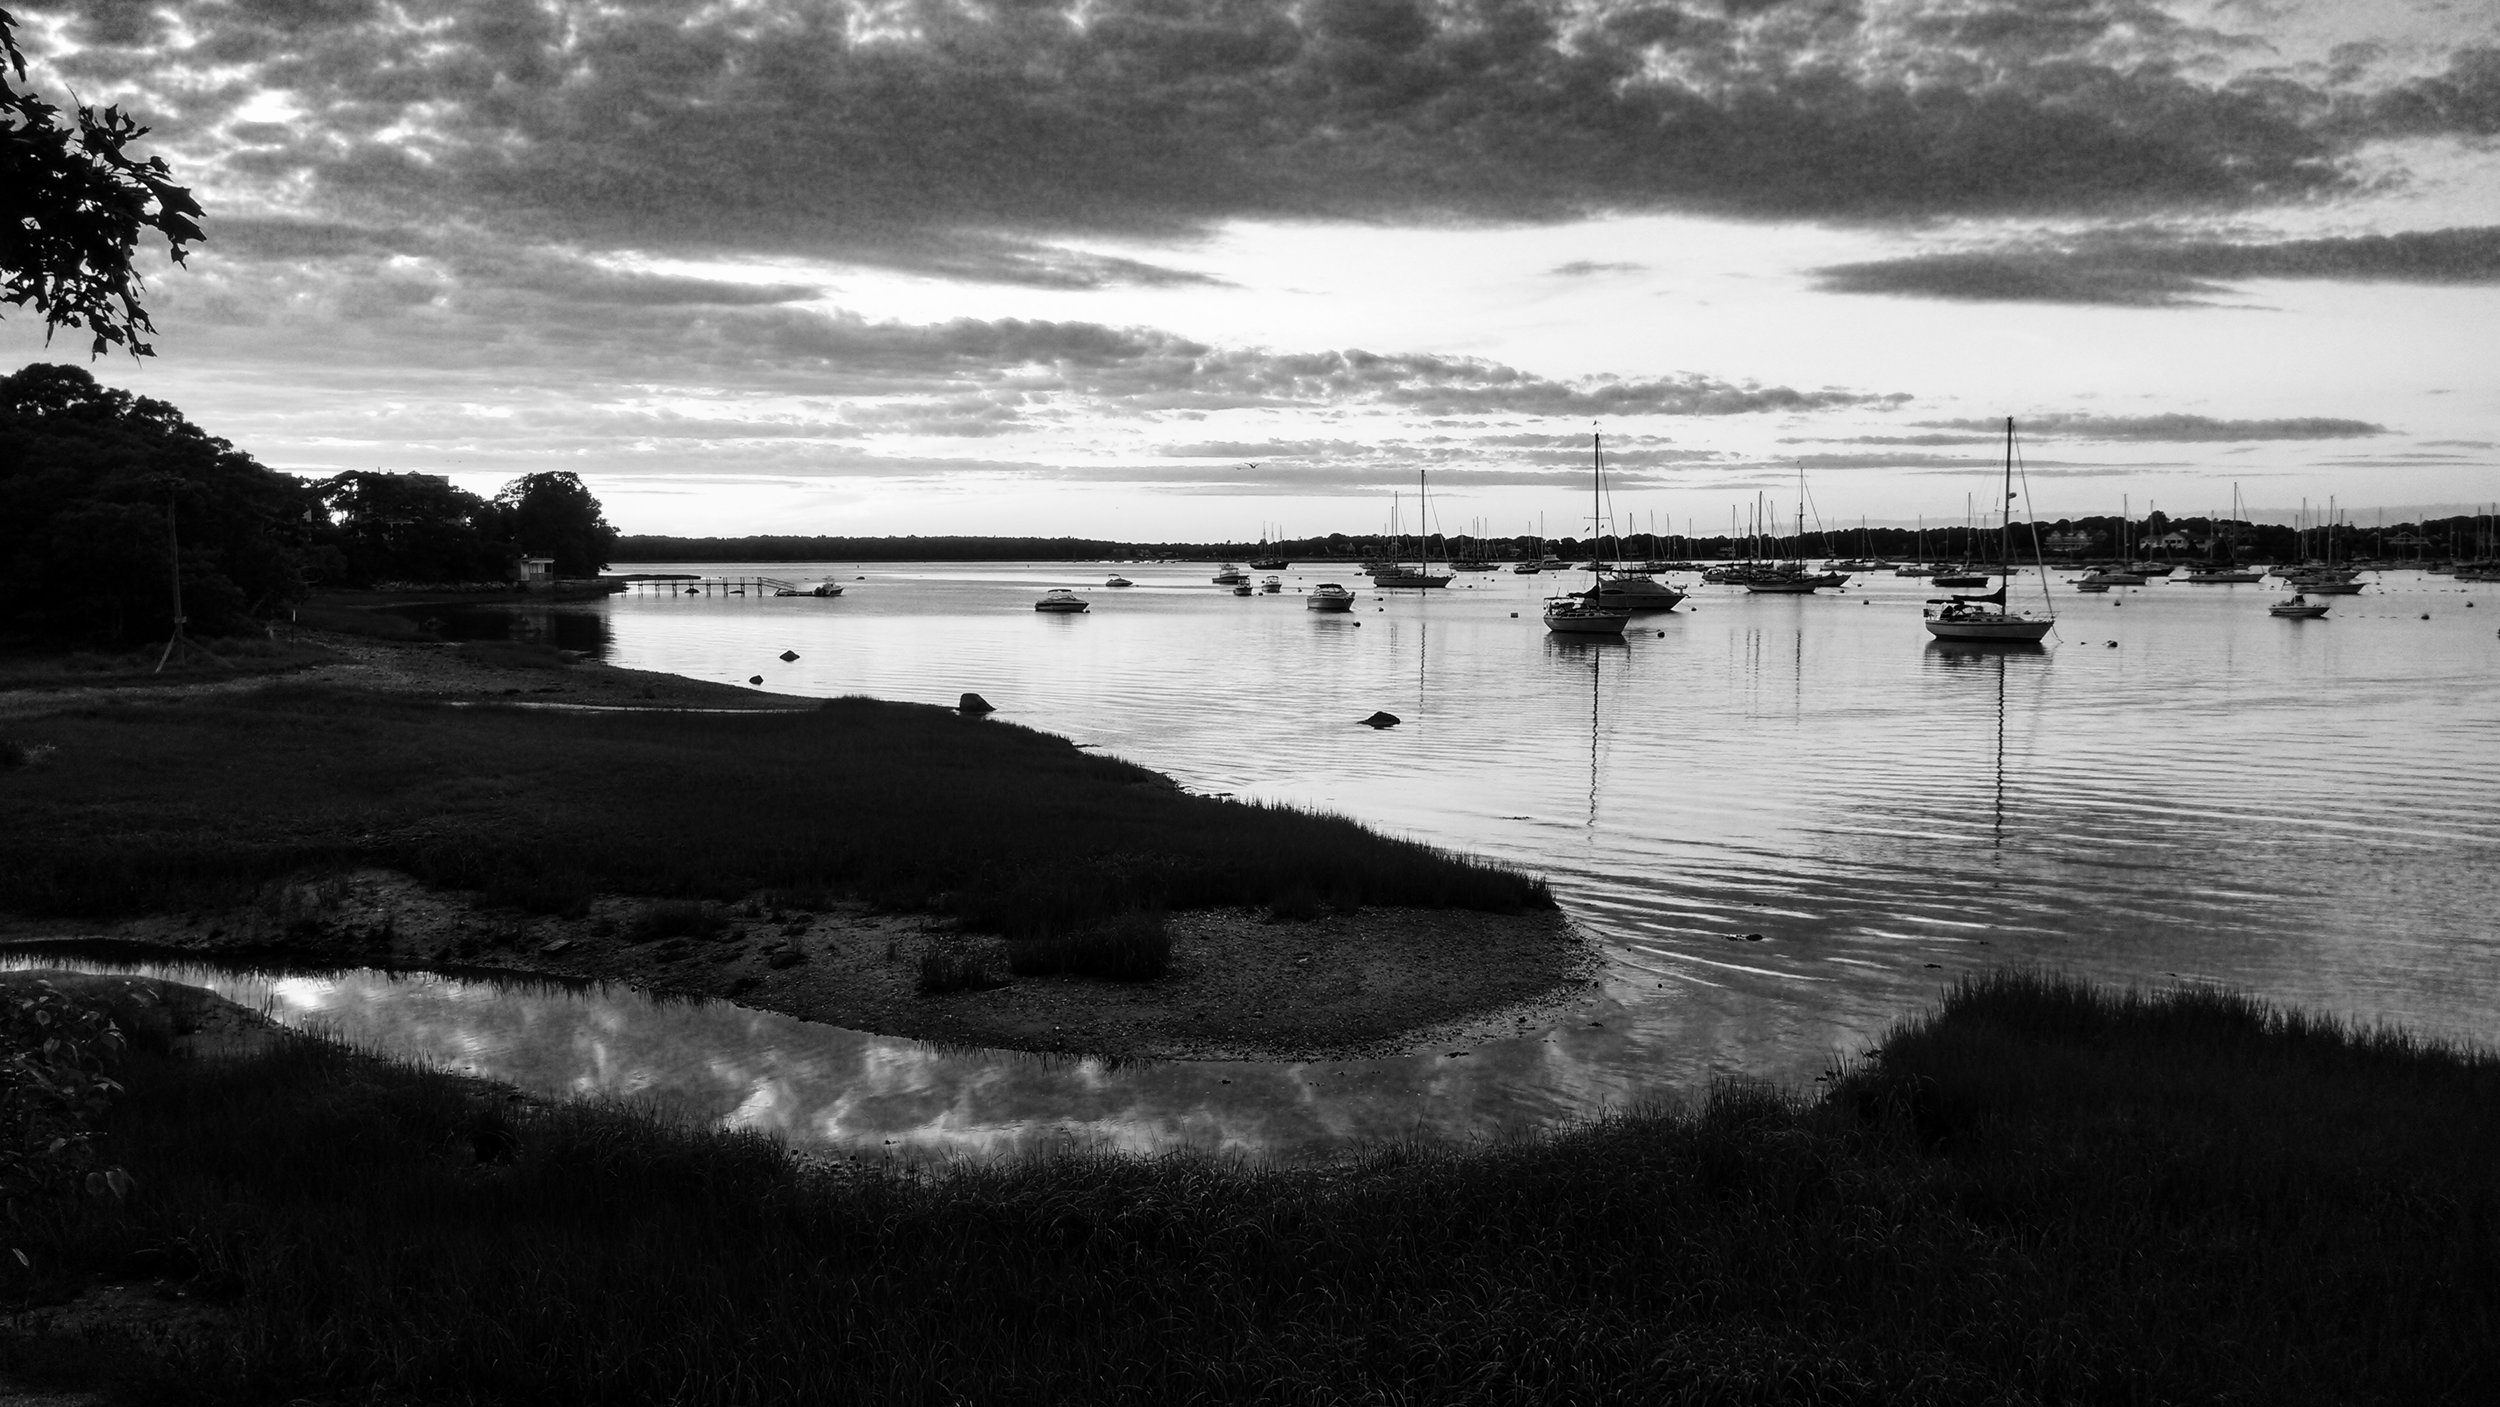 Reflecting on Cape Cod - James McCarey